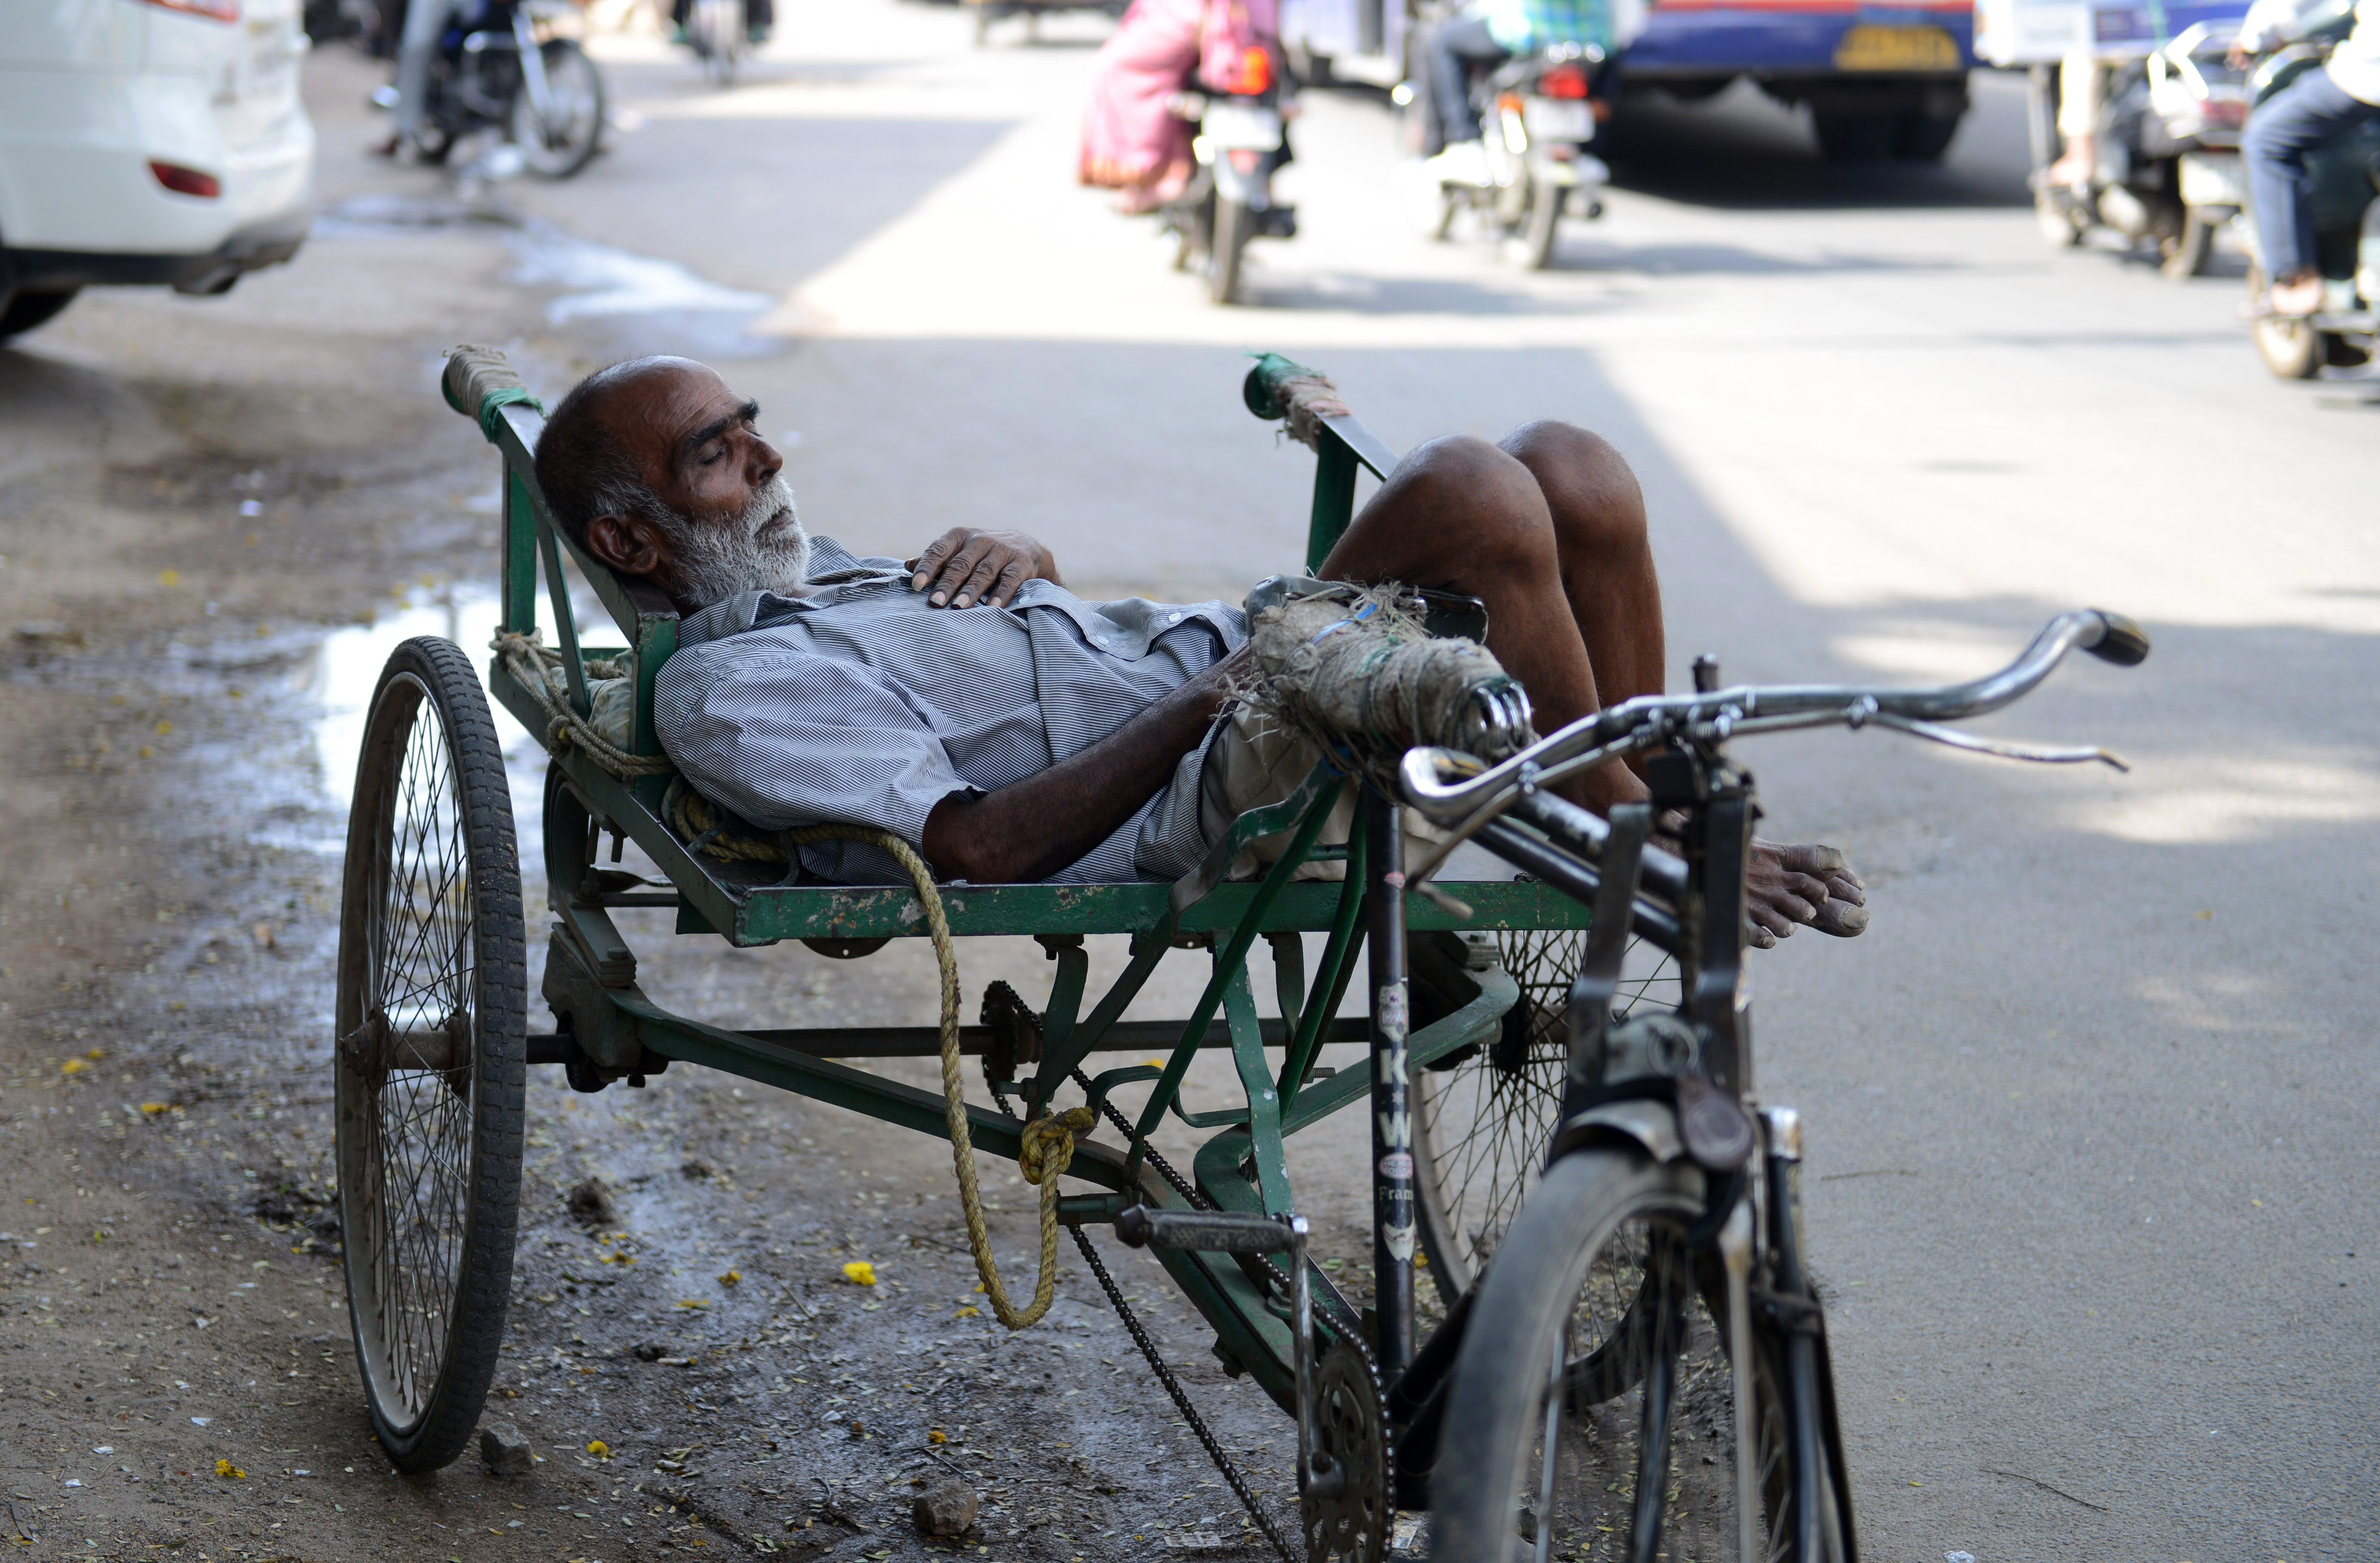 An Indian resident sleeps in the shade on a tricyle at the roadside in Hyderabad on May 22, 2015